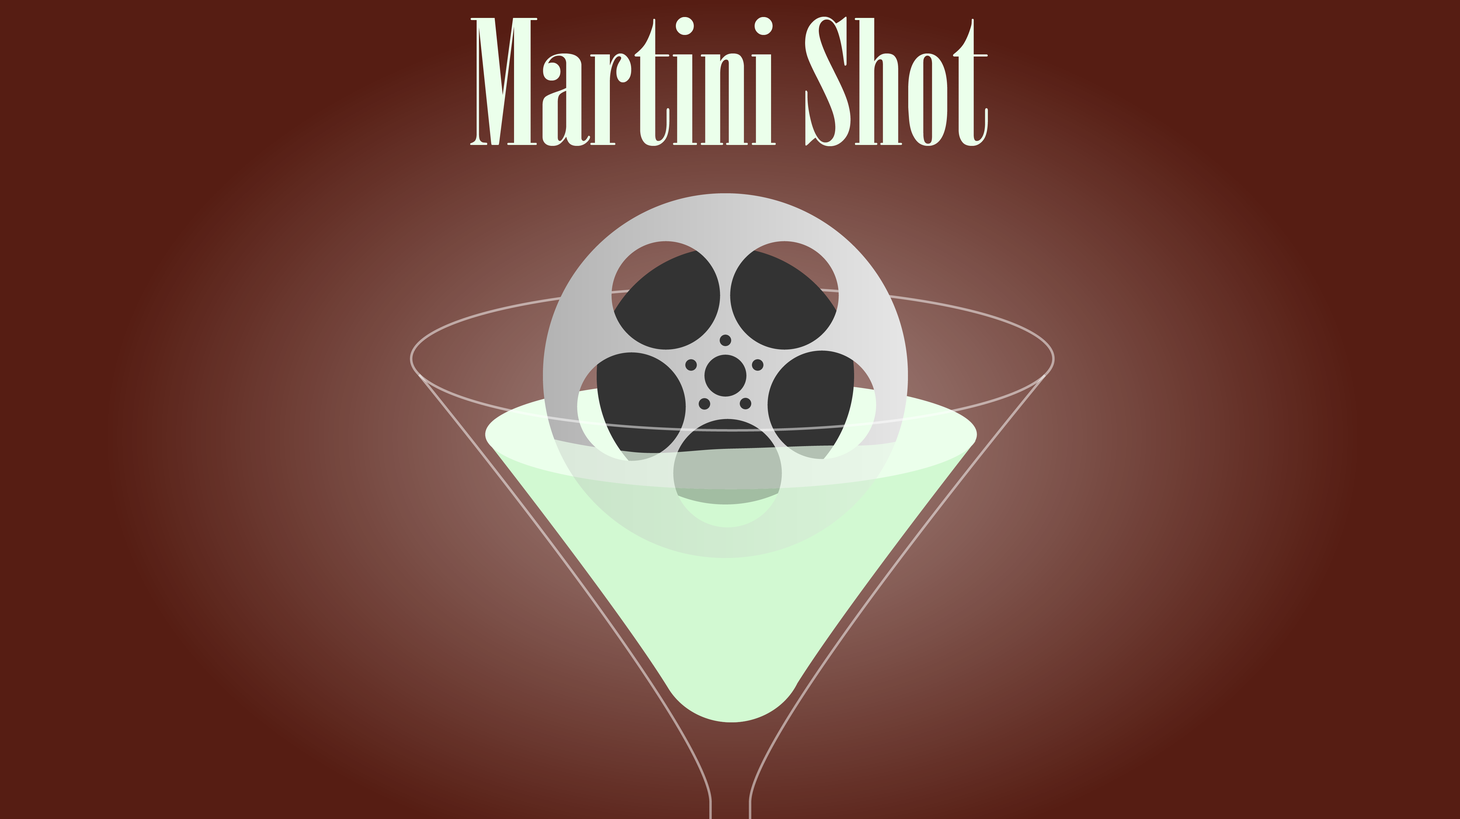 This is Rob Long, and on today's Martini Shot I talk about the worst sales pitch ever, which goes like this: you're terrible at your job, you don't know what you're doing, please hire me.